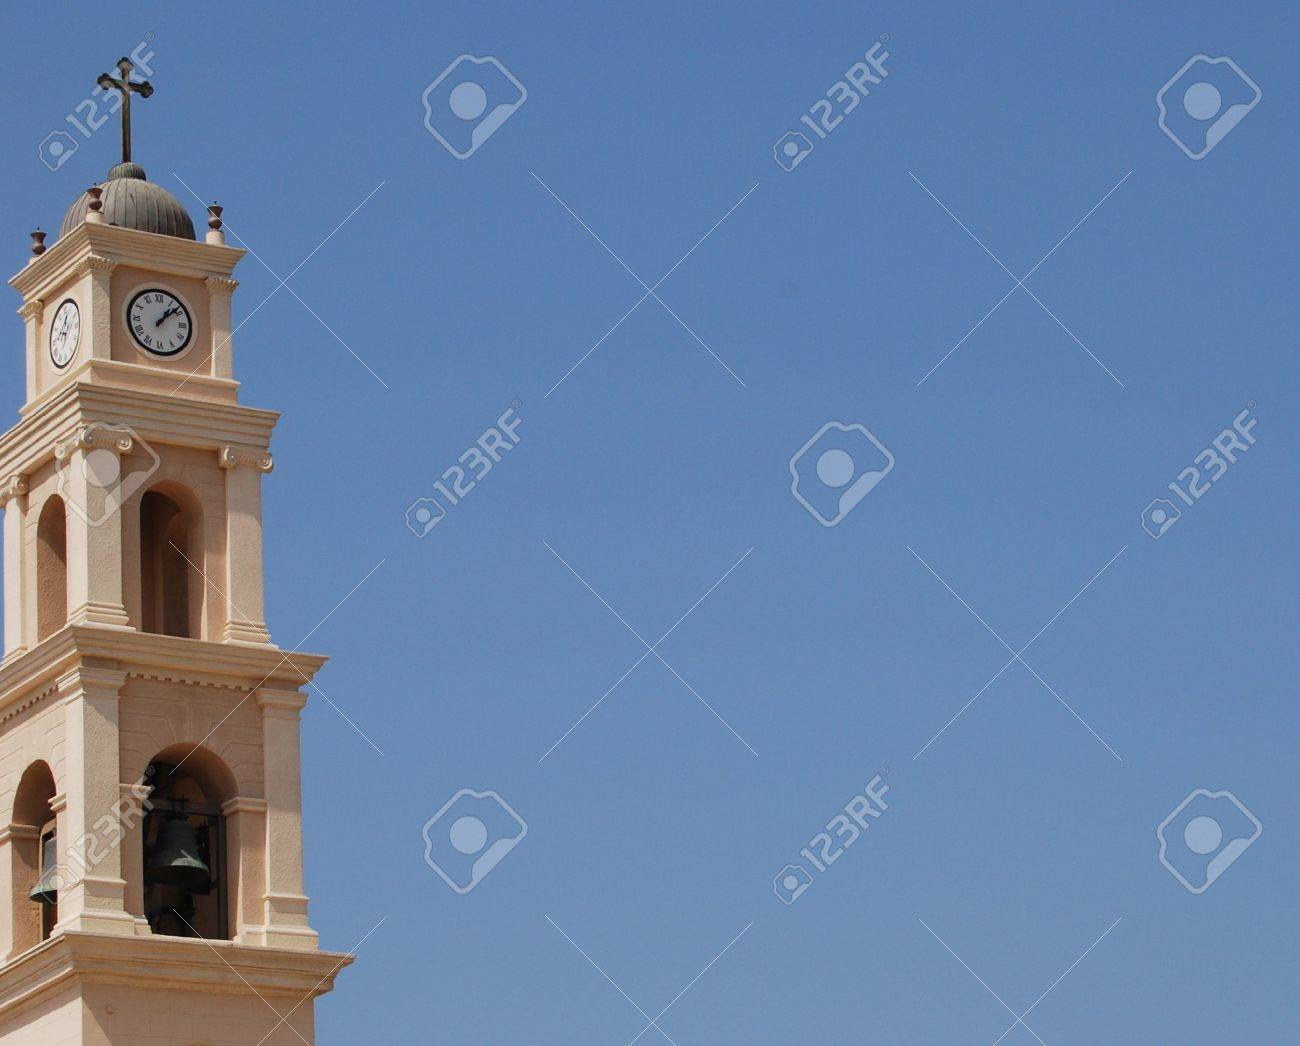 Old tower with clock and cross and bell in israel Stock Photo - 2977598